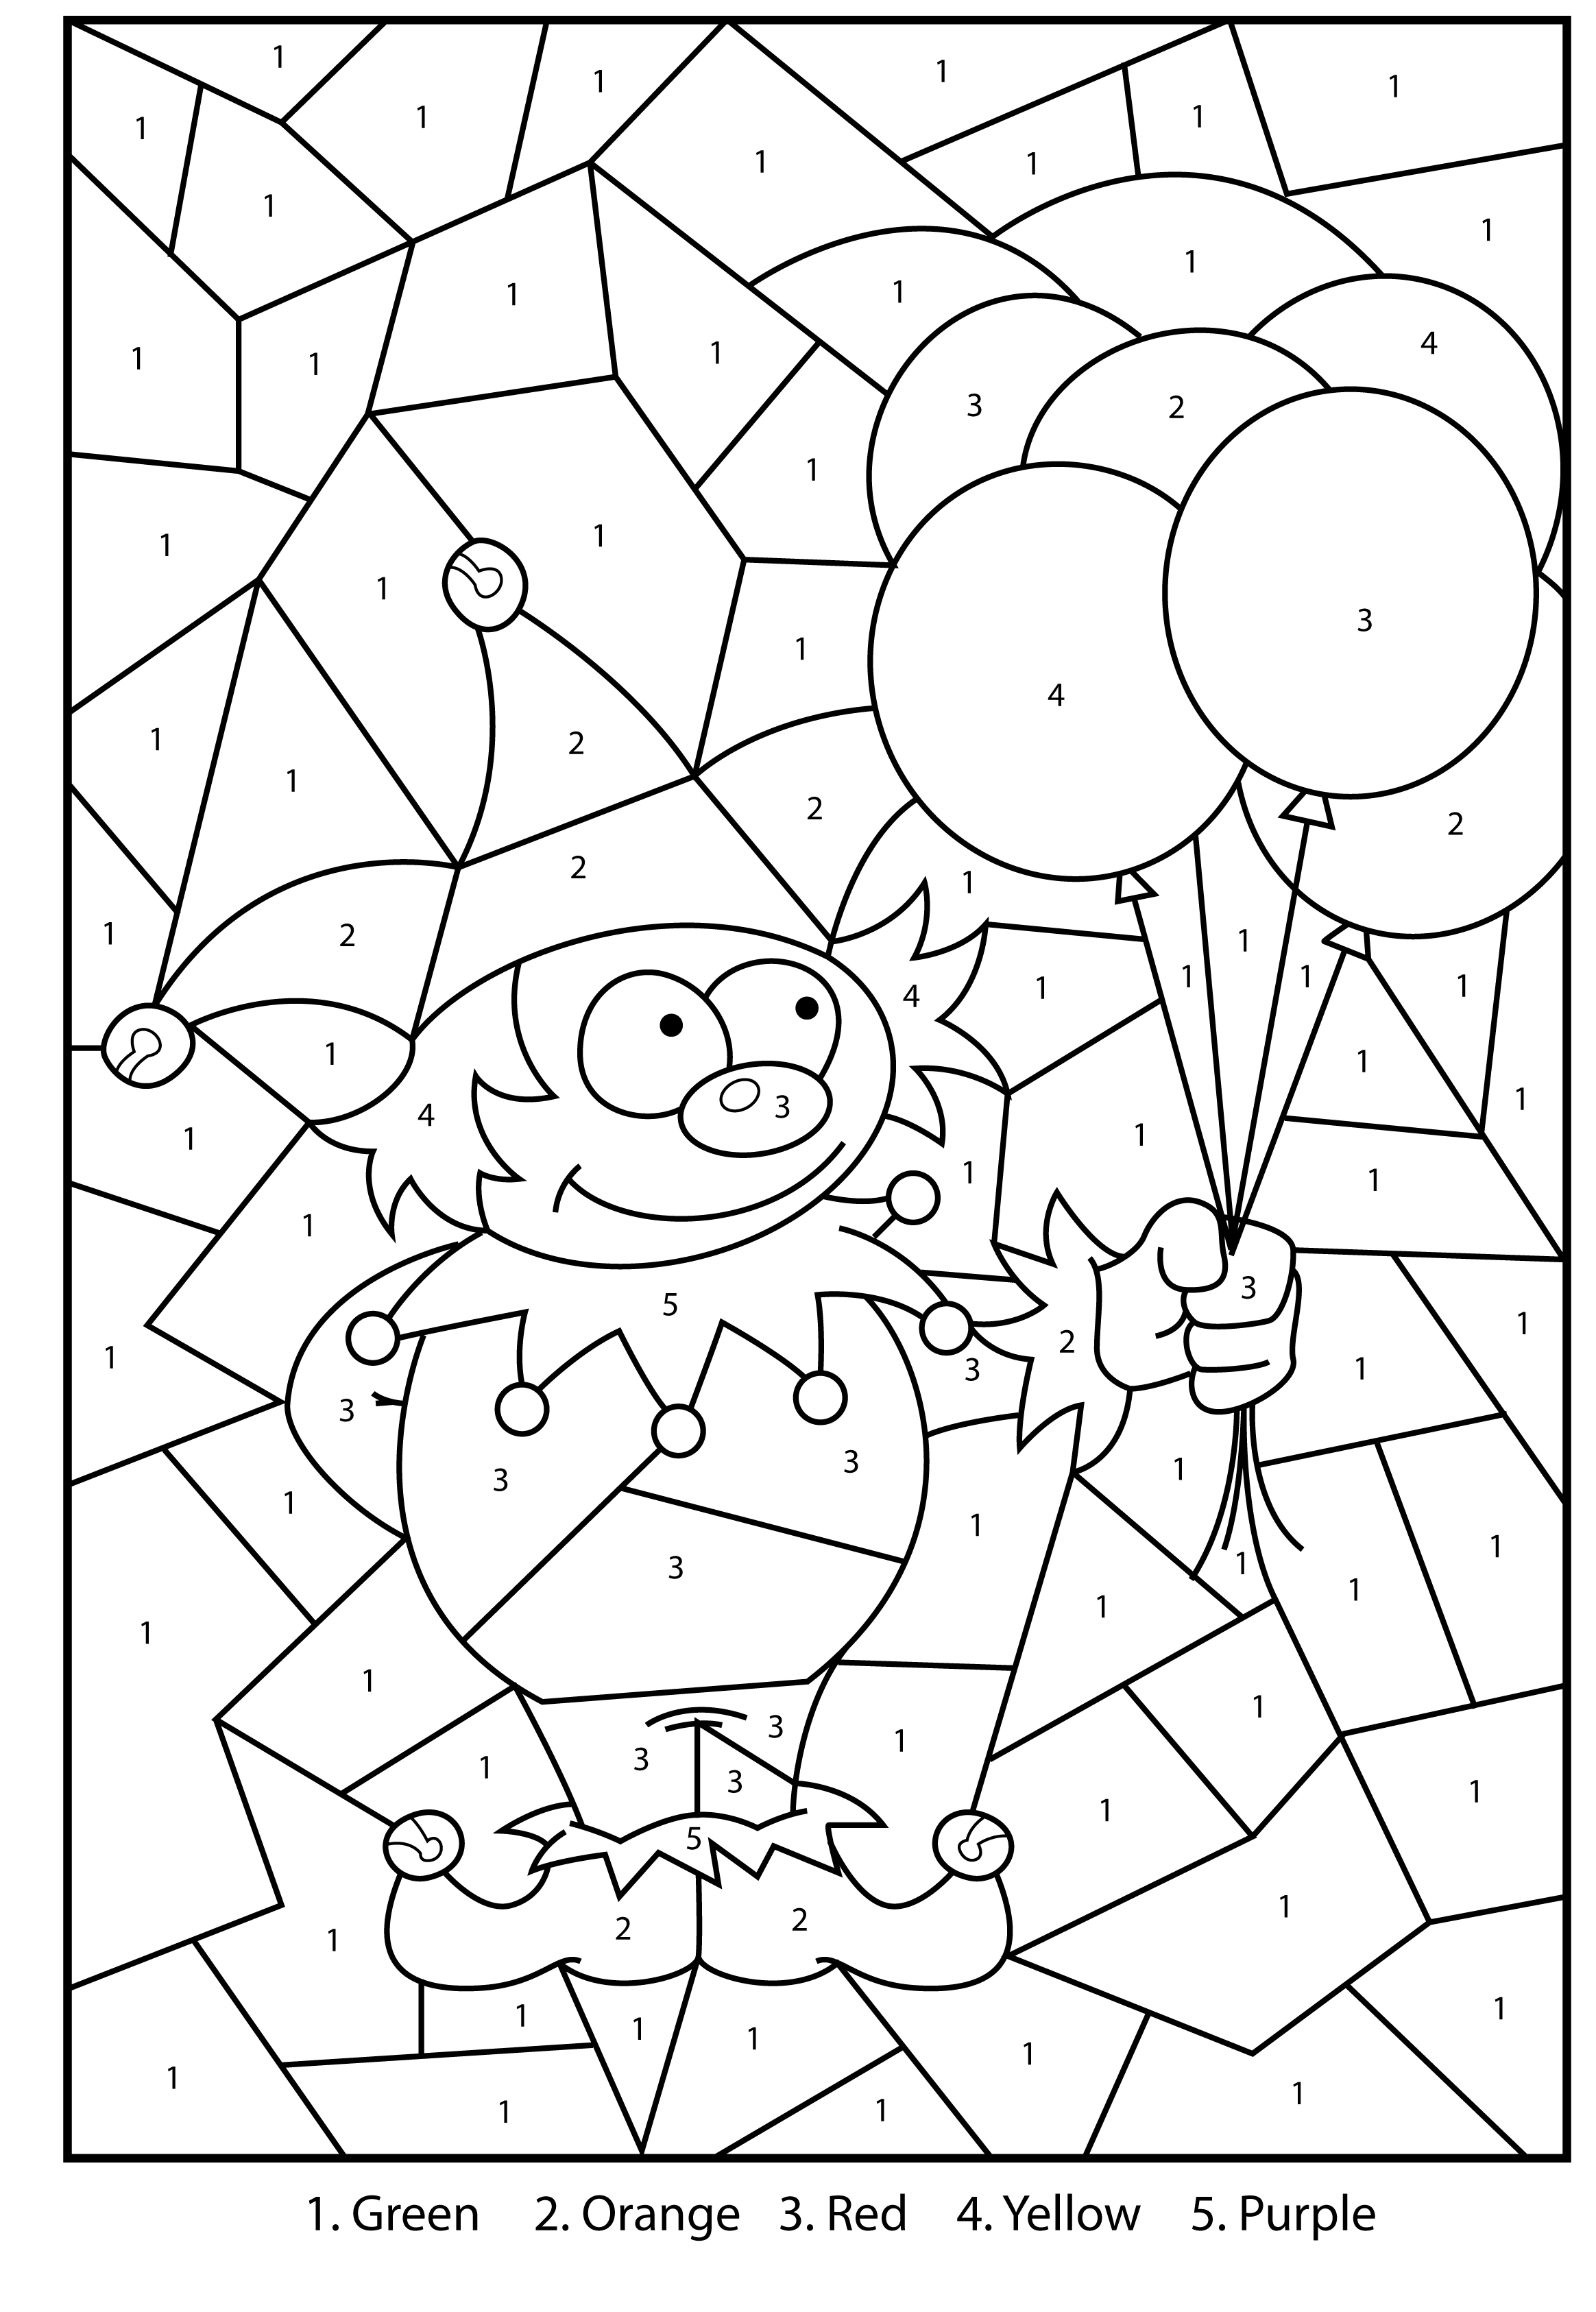 coloring with numbers printable color by number coloring pages to download and print for free numbers coloring printable with